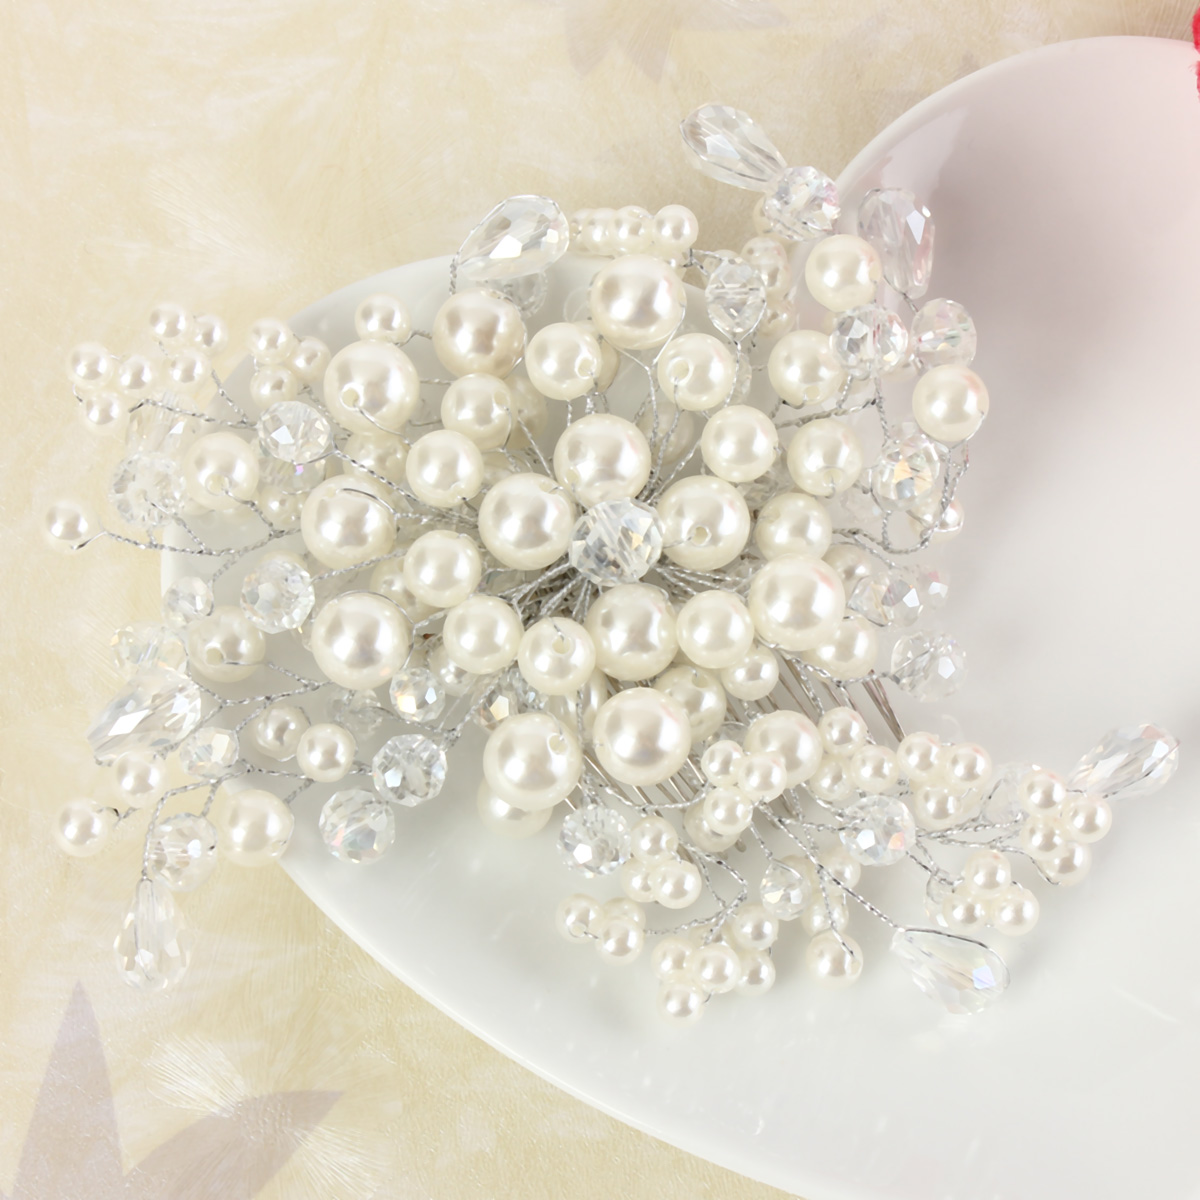 Bride Pearl Crystal Bead Hair Bomb Bridal Weddig Headpiece Hair Accessories